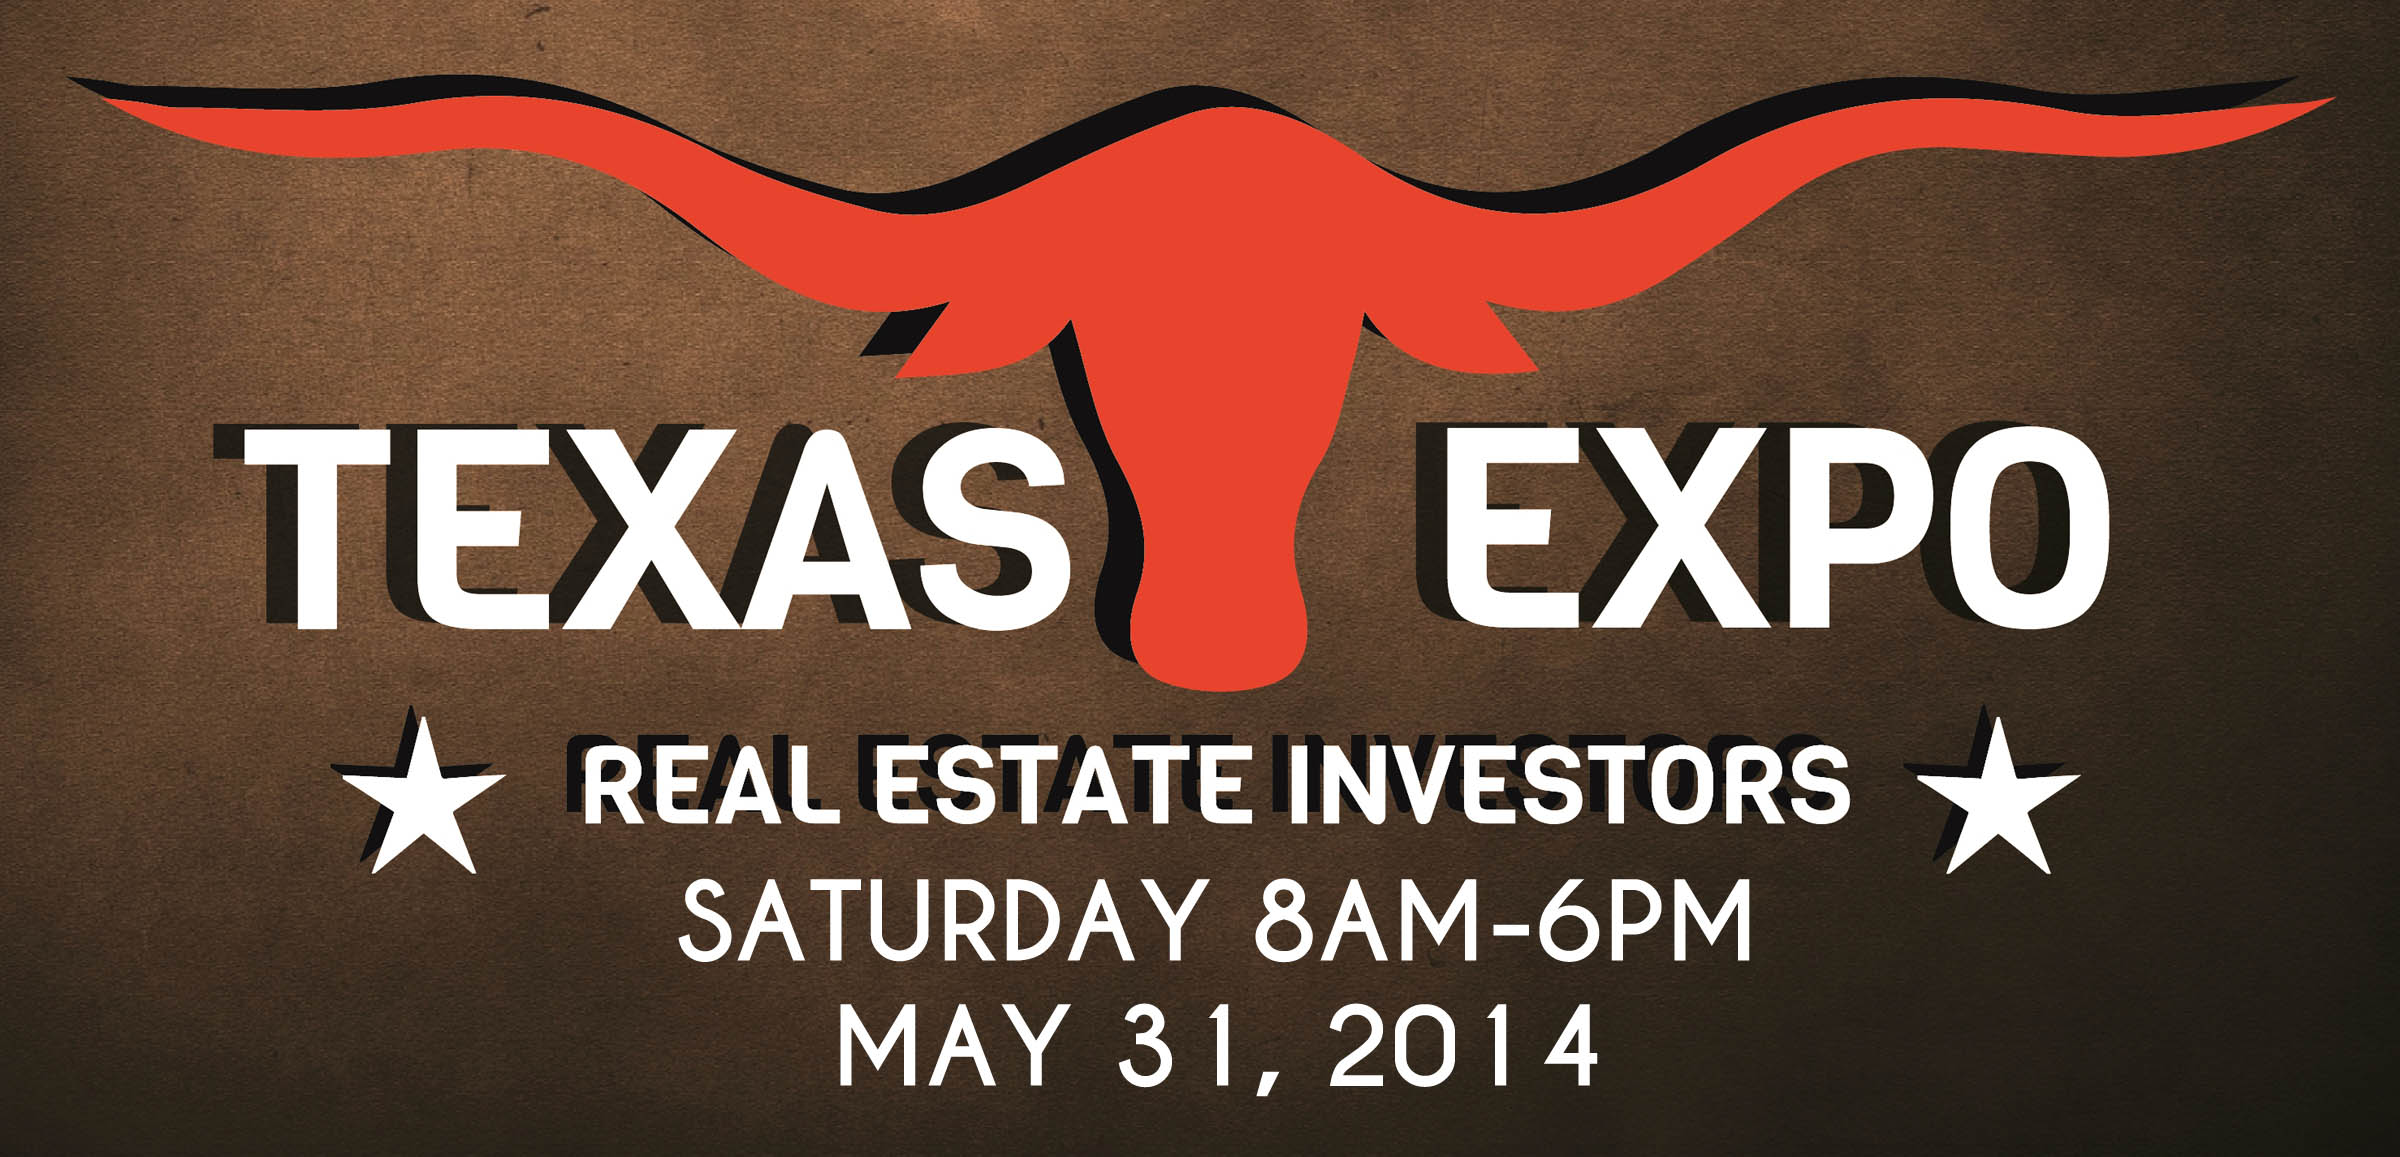 Join The Real Estate Guys at the San Antonio Texas Expo on May 31, 2014